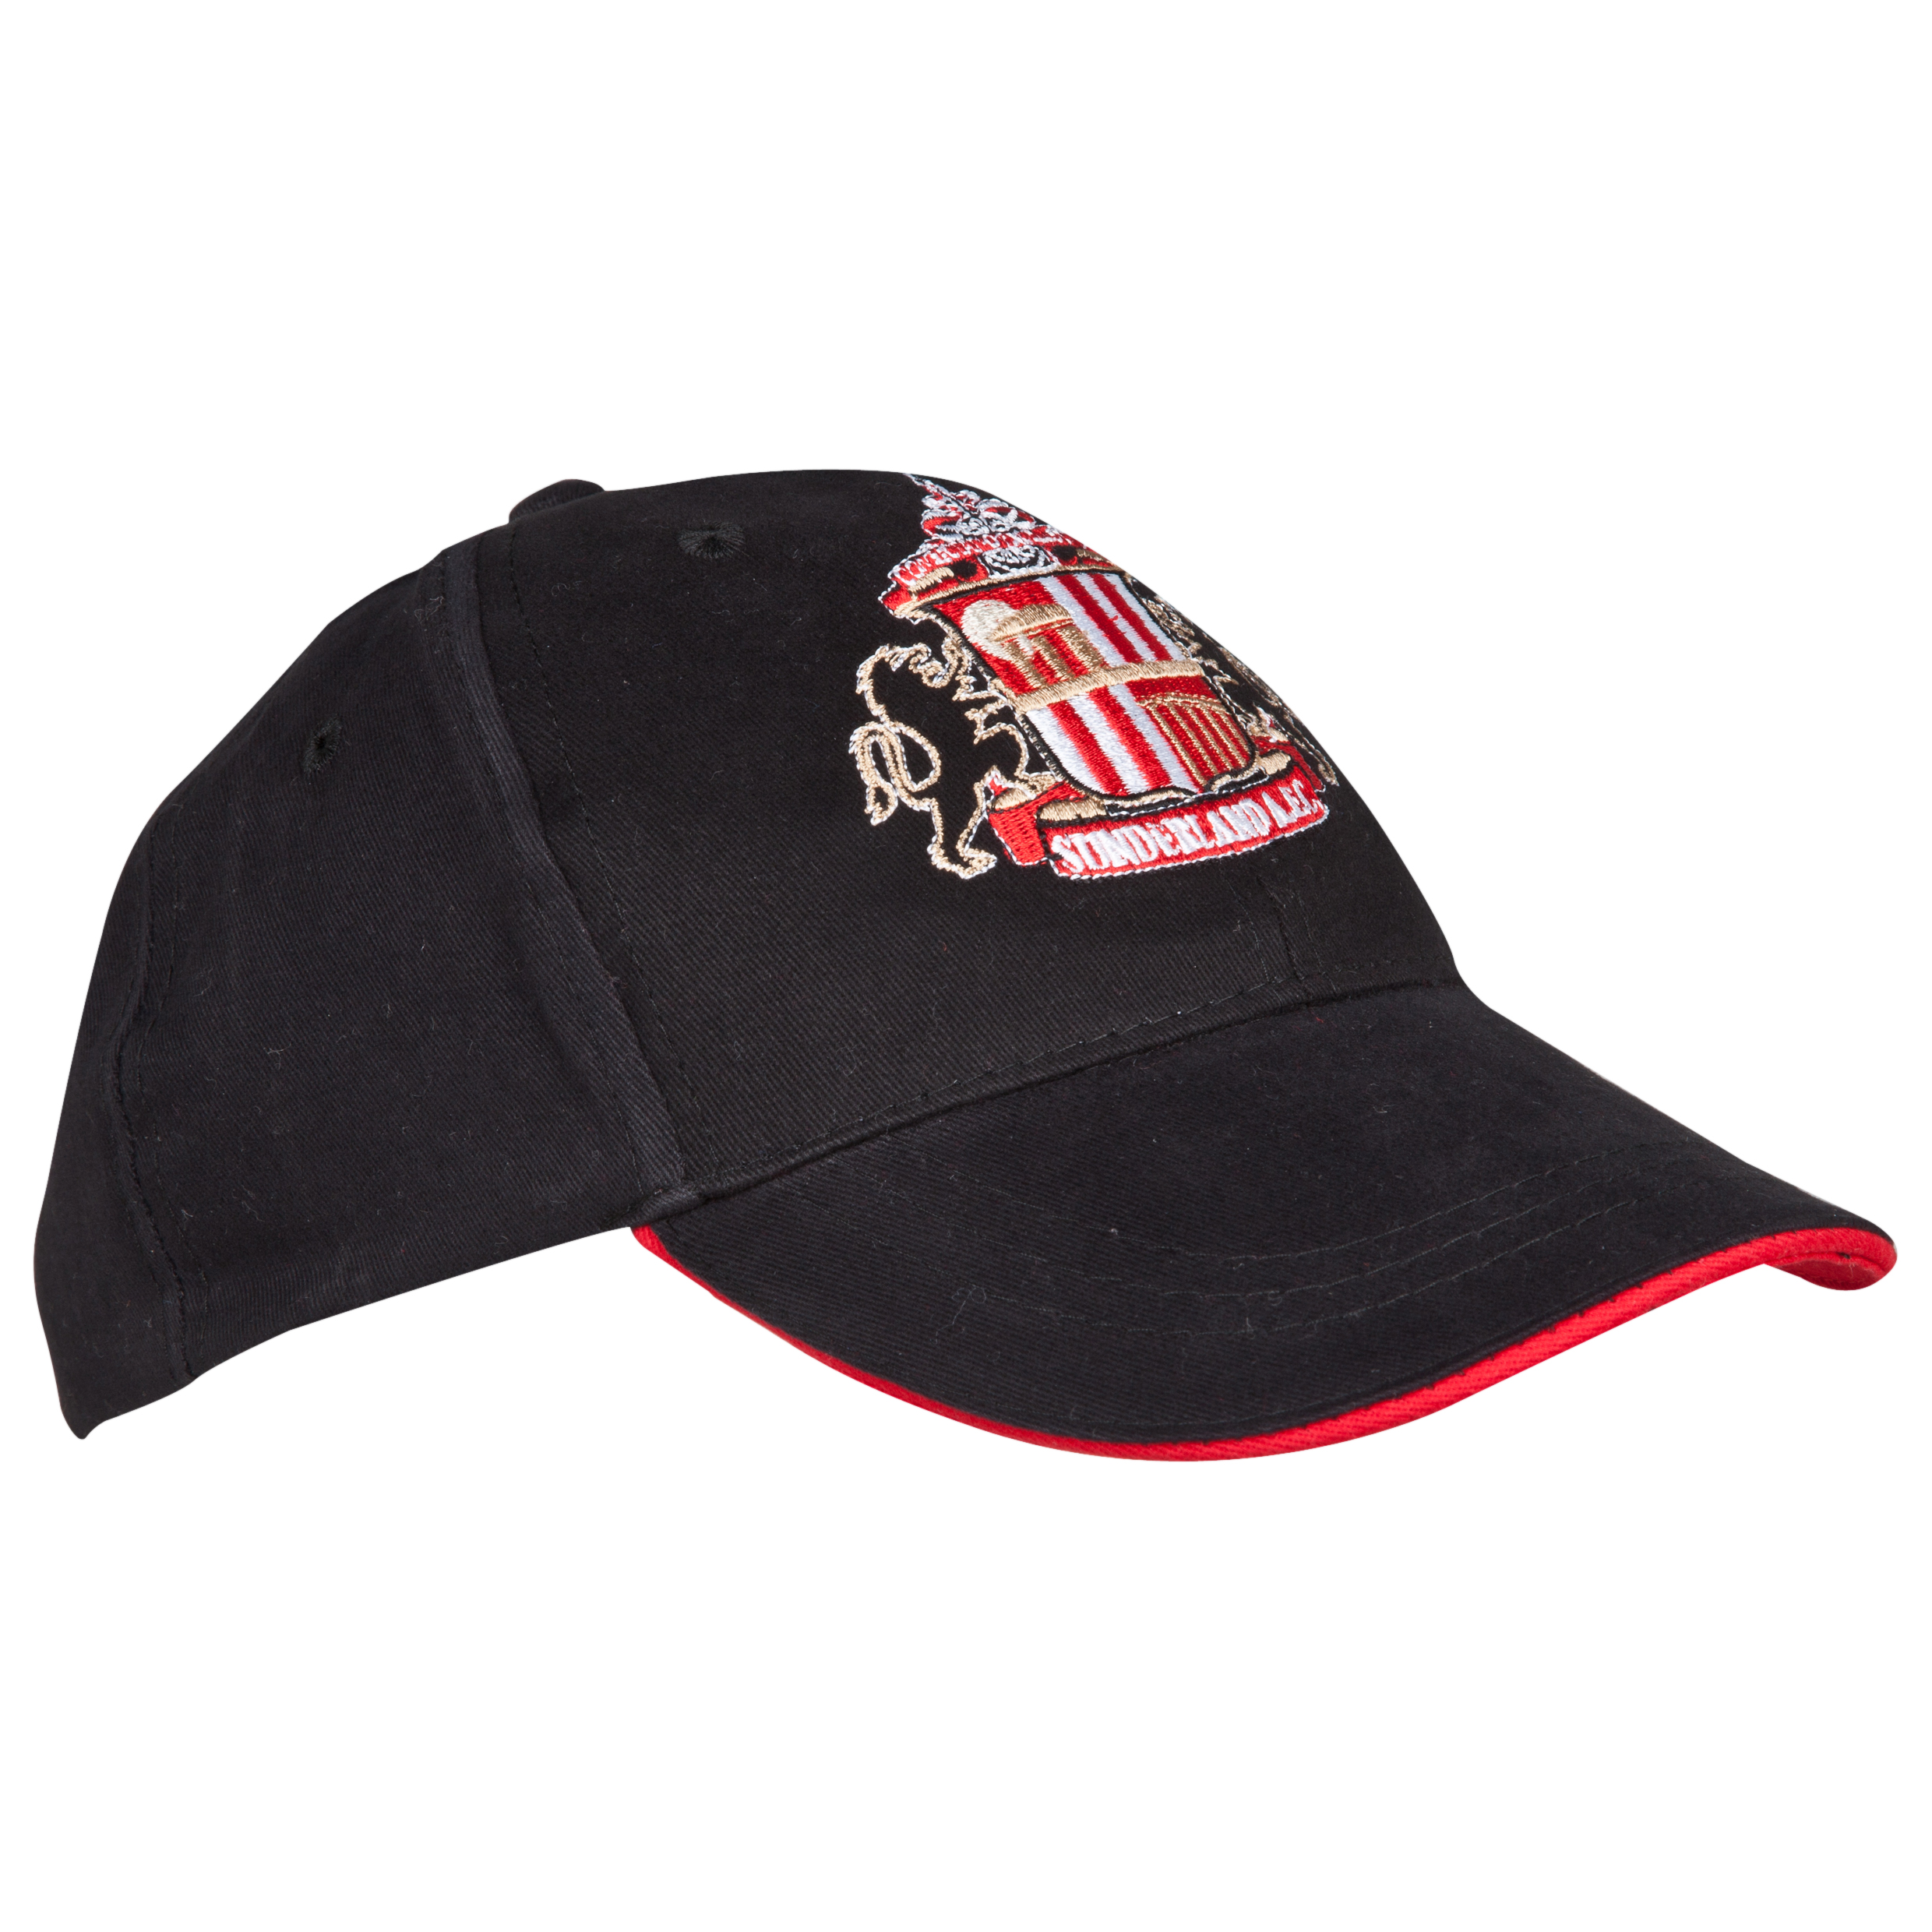 Sunderland Core Cap - Black